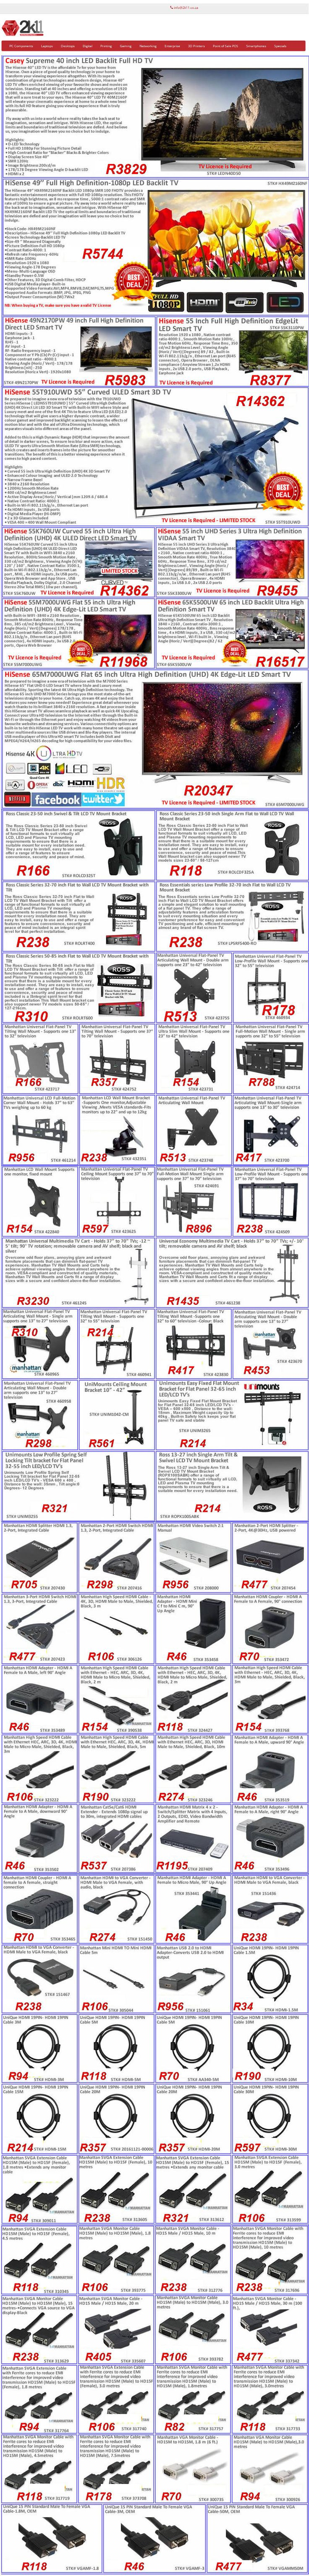 Television wall mounts and cables and adapters guide